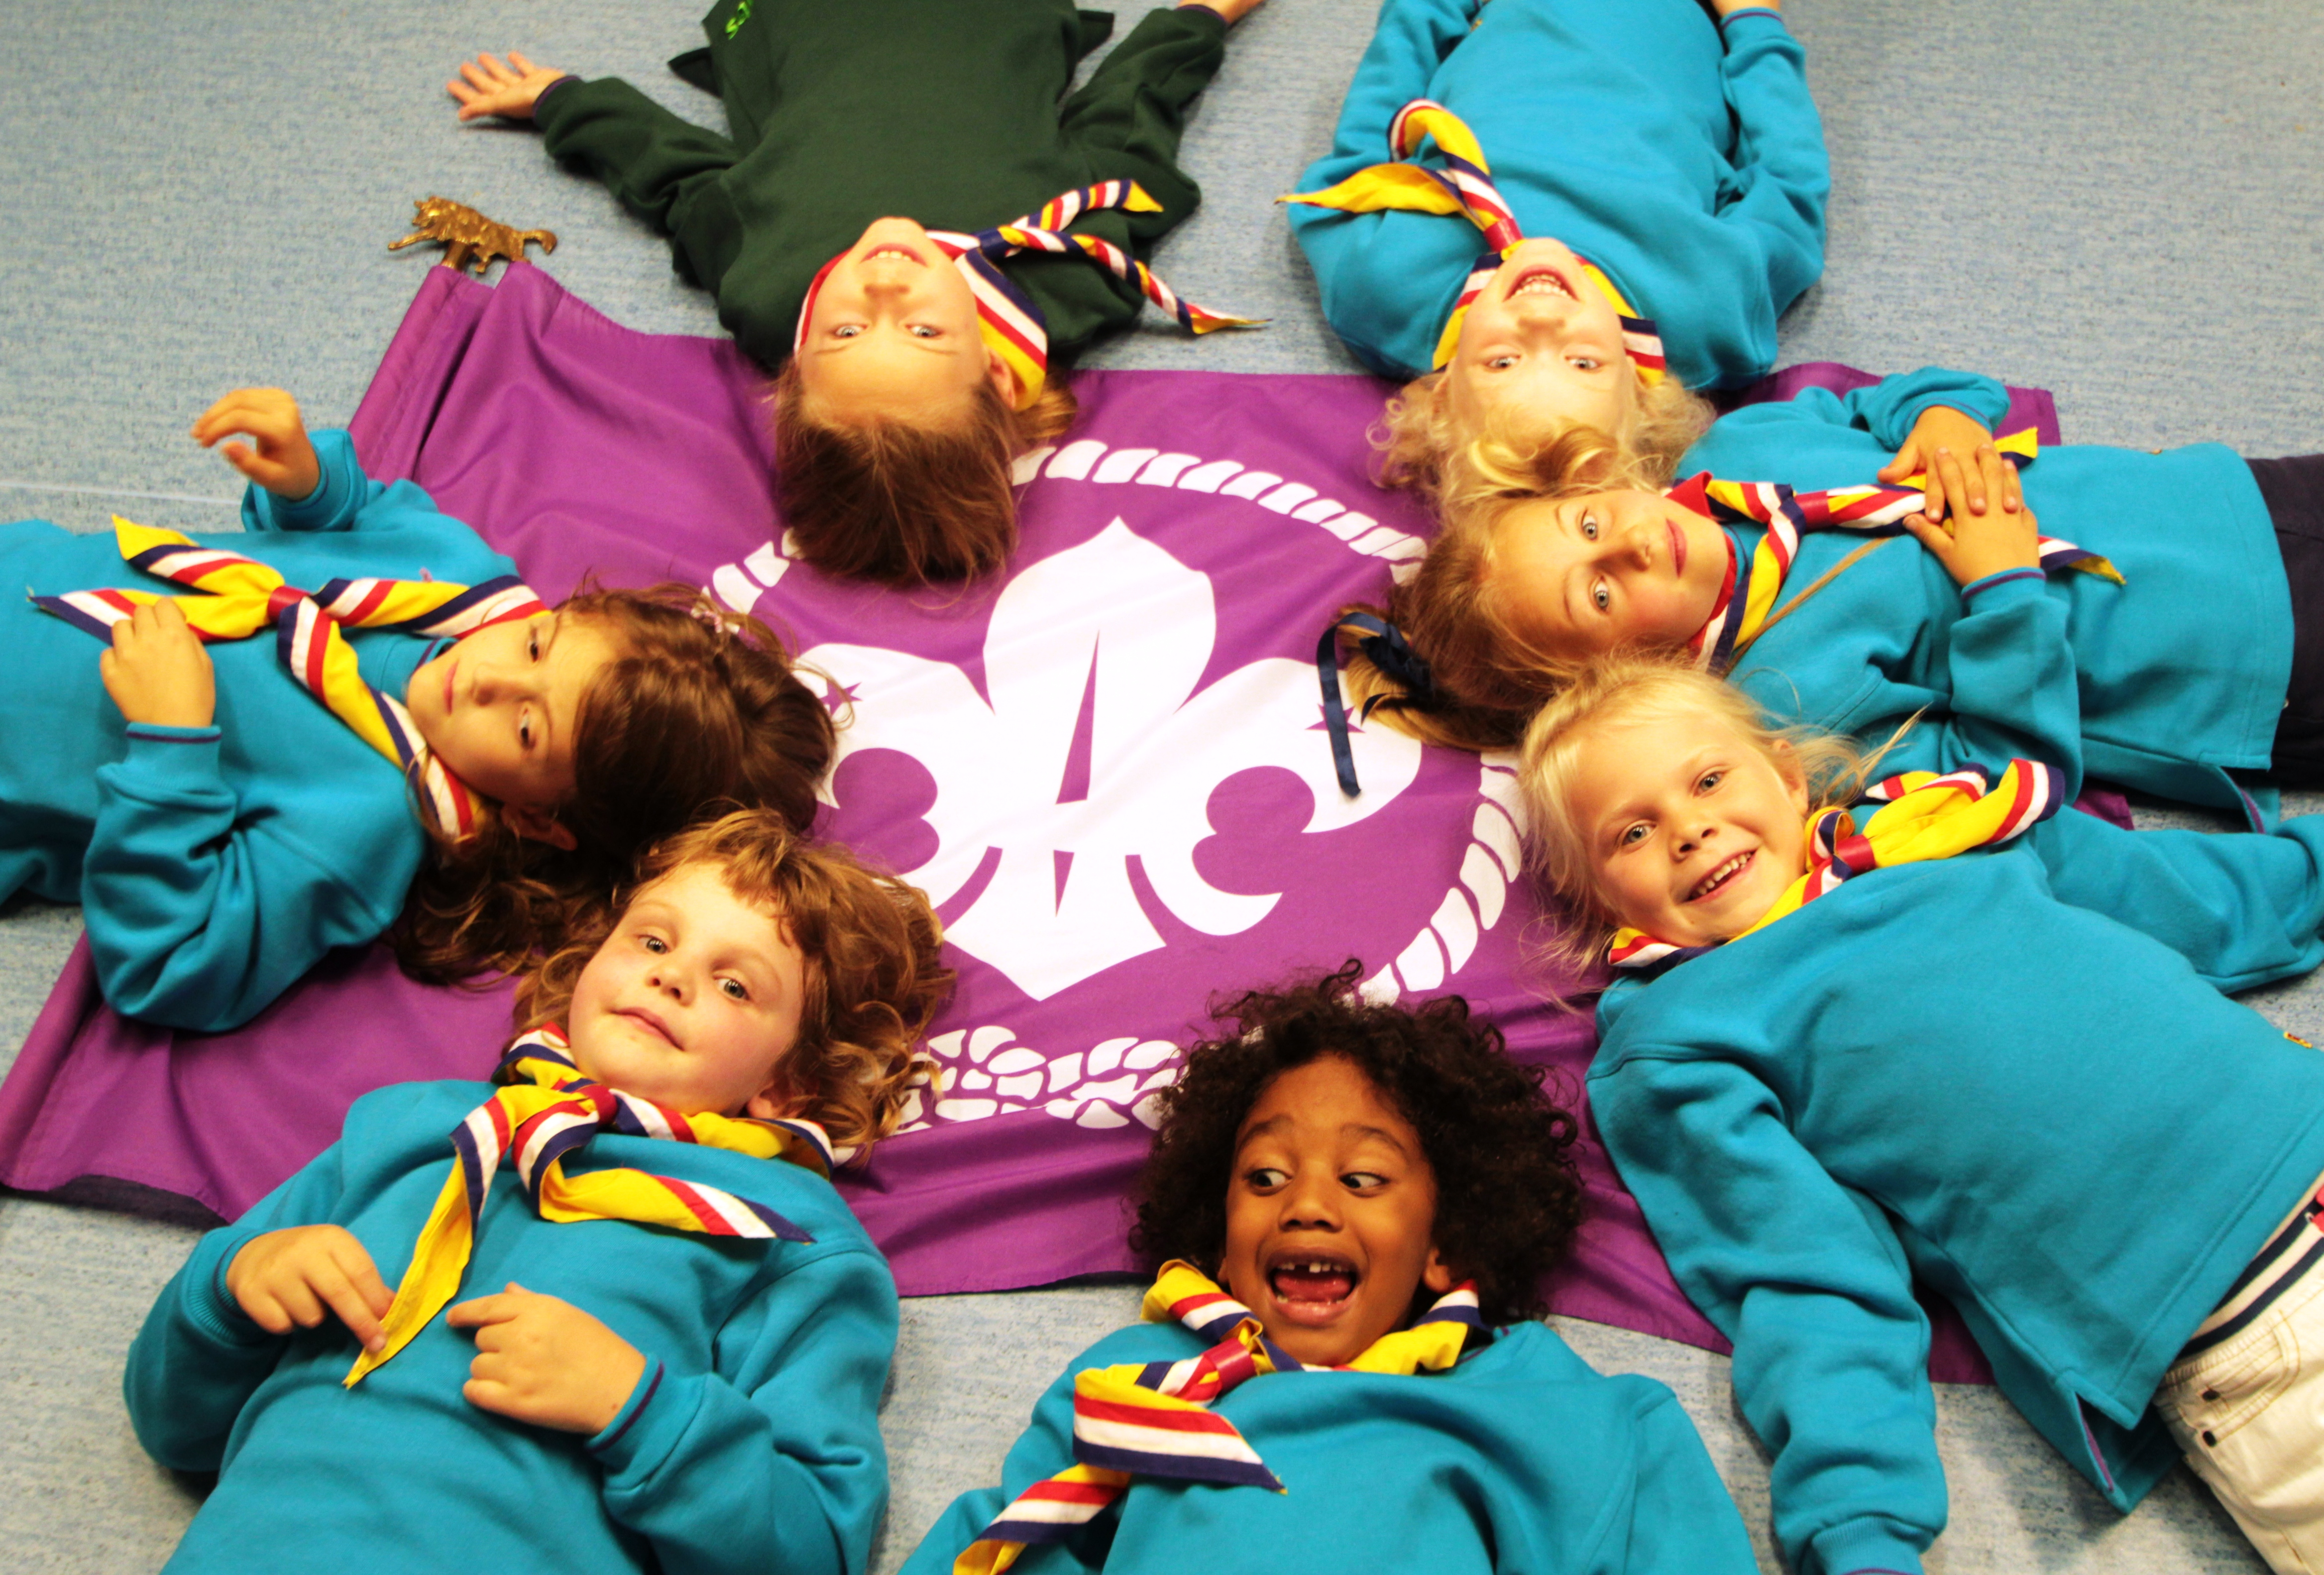 Prague Scouts is for young people aged 6 to 25 years.